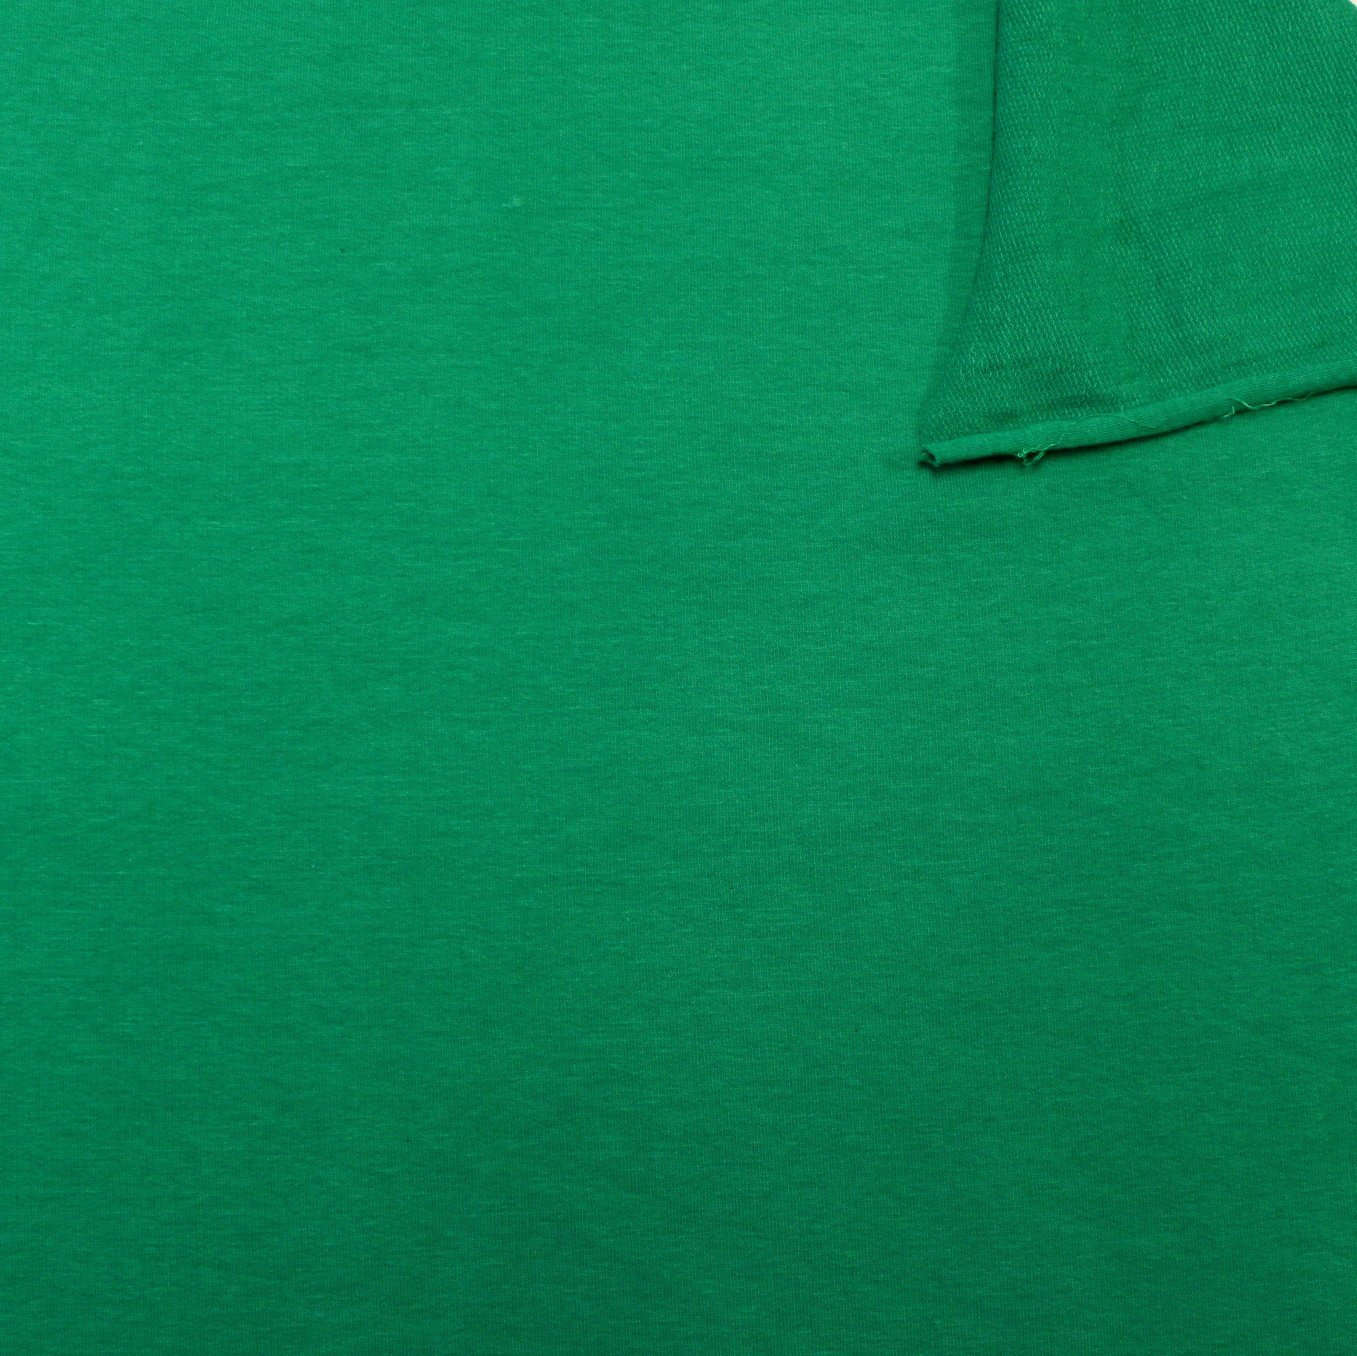 Solid Kelly Green 4 Way Stretch French Terry Knit Fabric With Spandex - Raspberry Creek Fabrics Knit Fabric